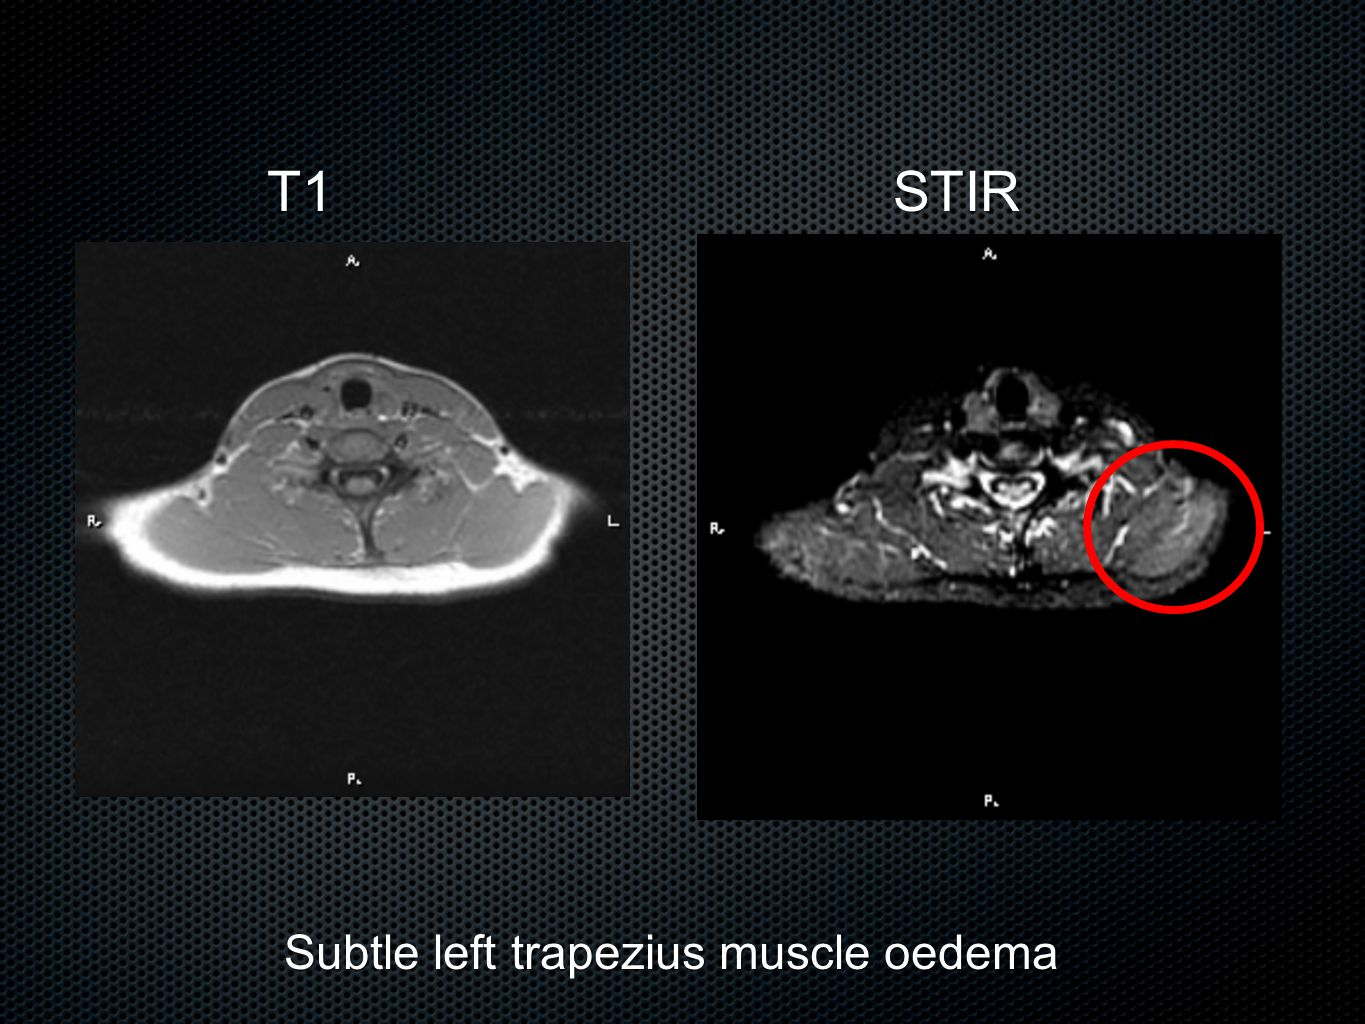 Subtle left trapezius muscle oedema T1STIR